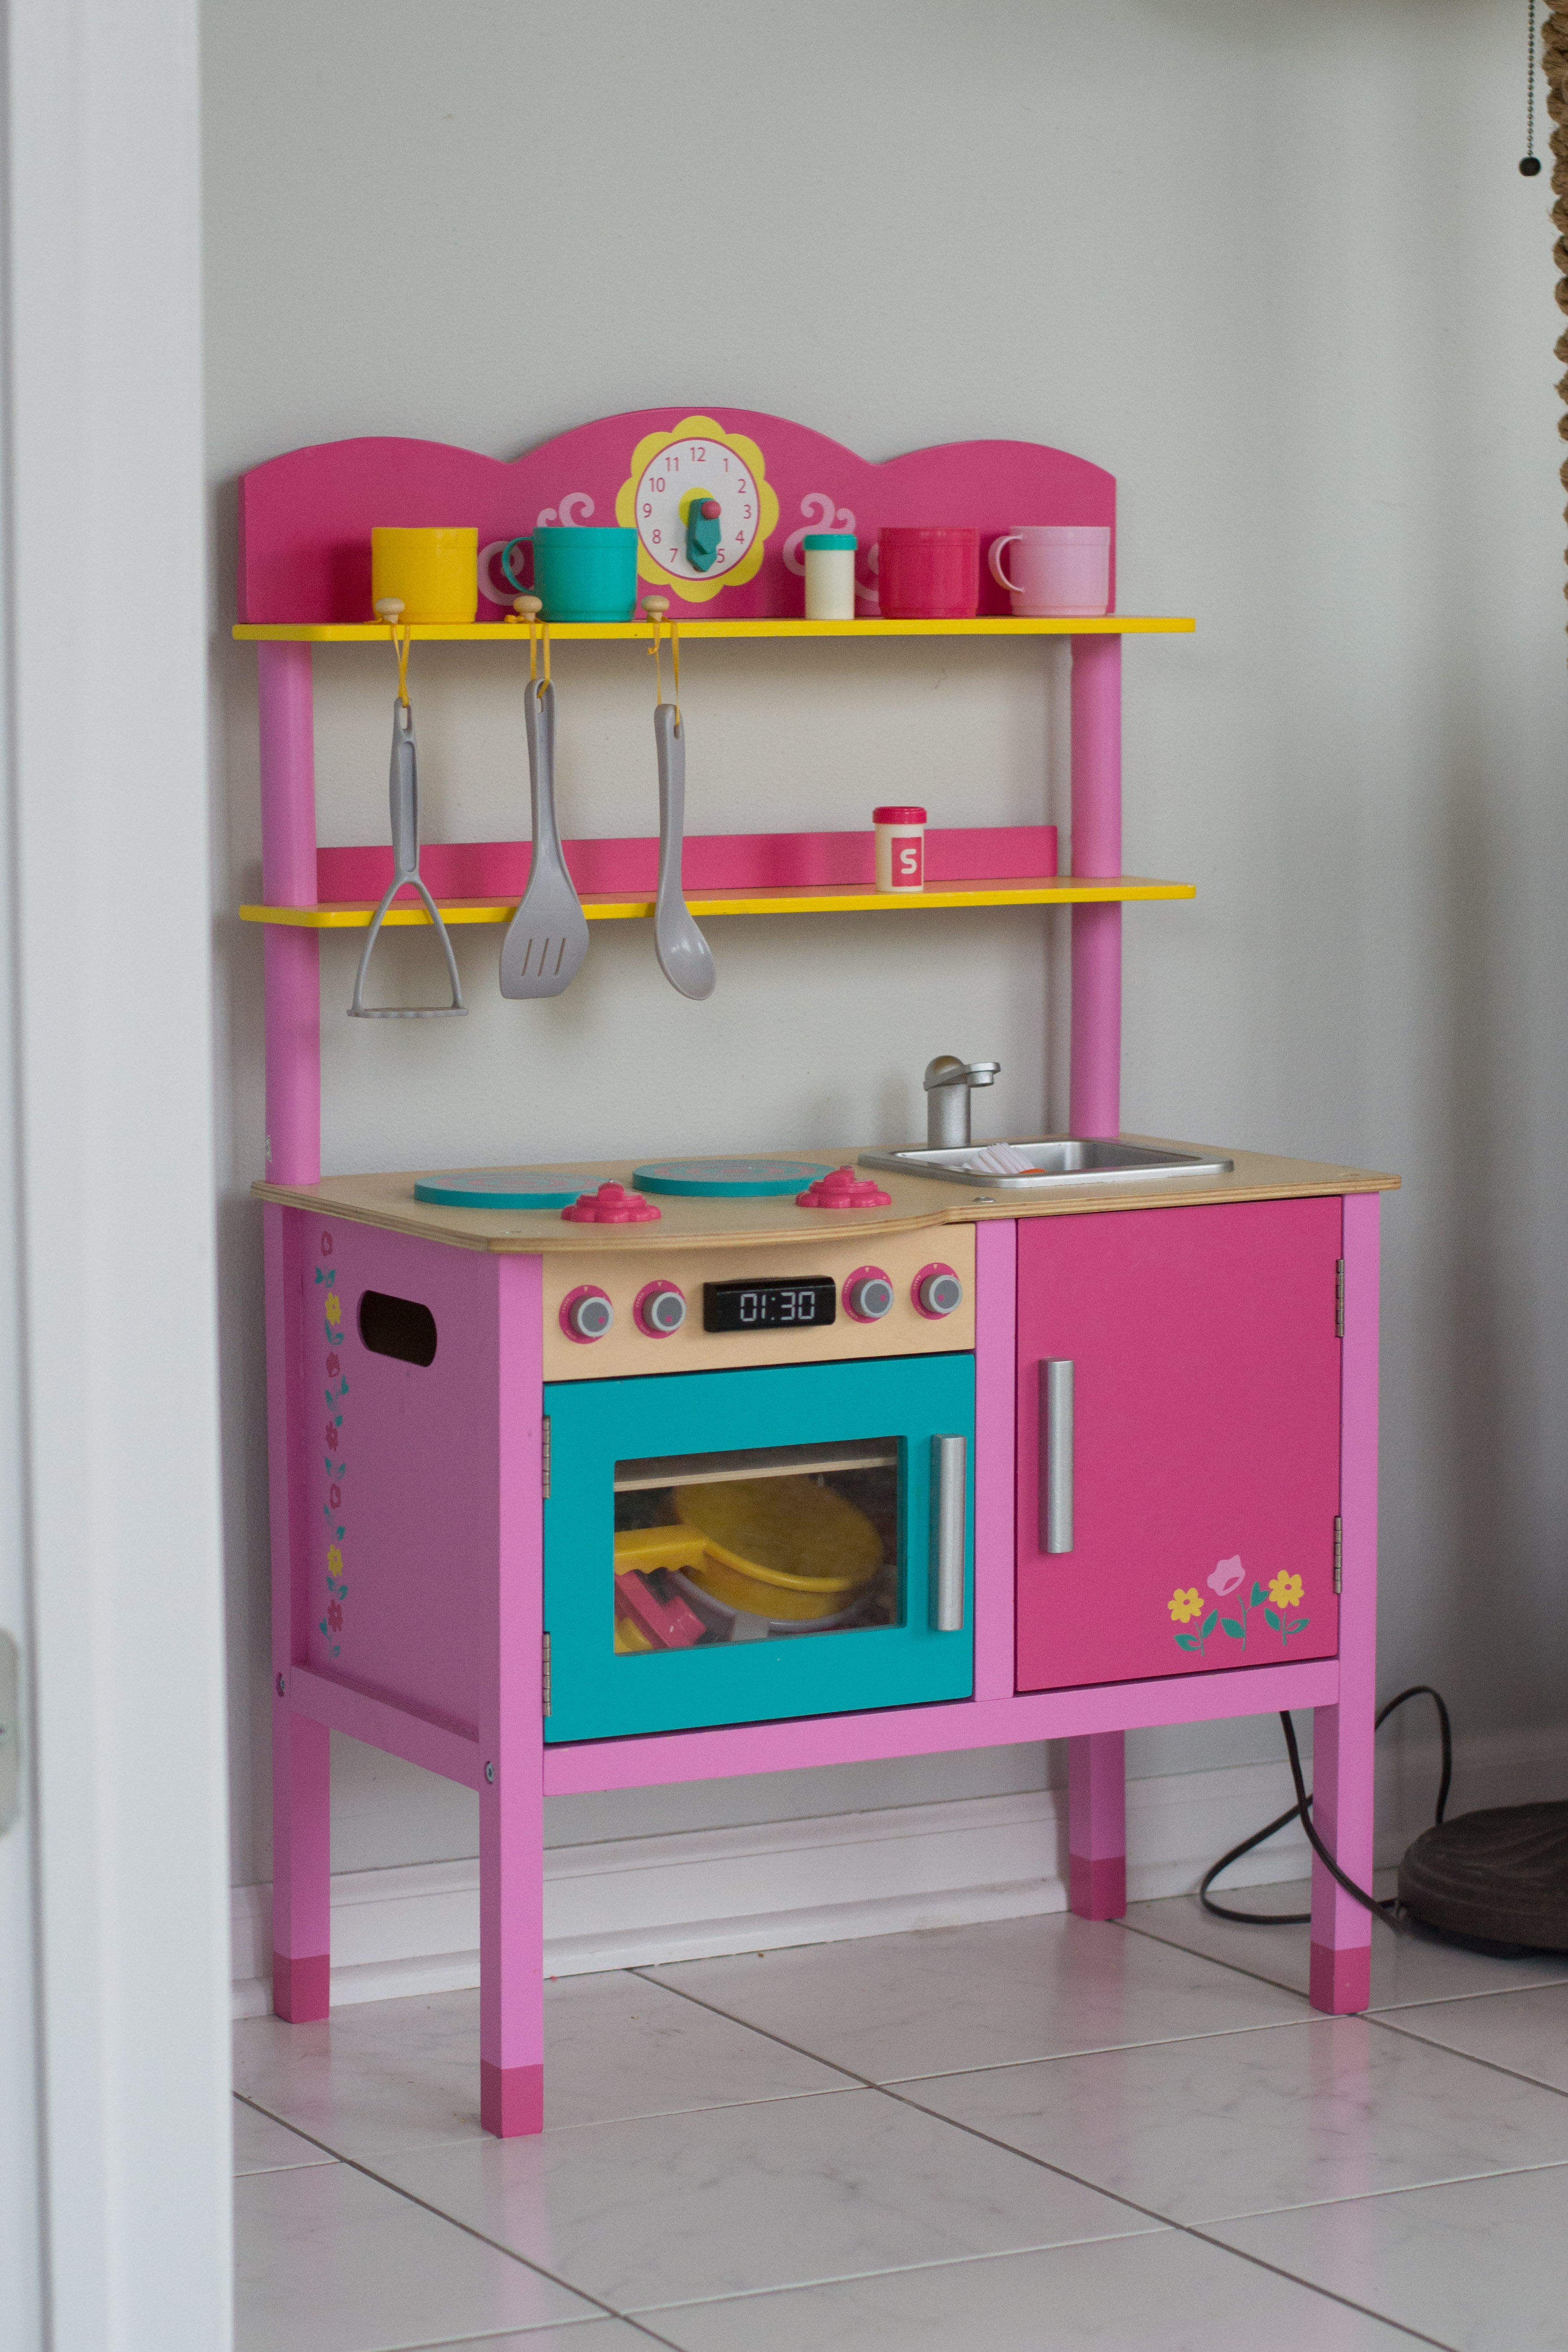 Toy review target little girl s kitchen thehoneyhoneyblog for Little girl kitchen playset